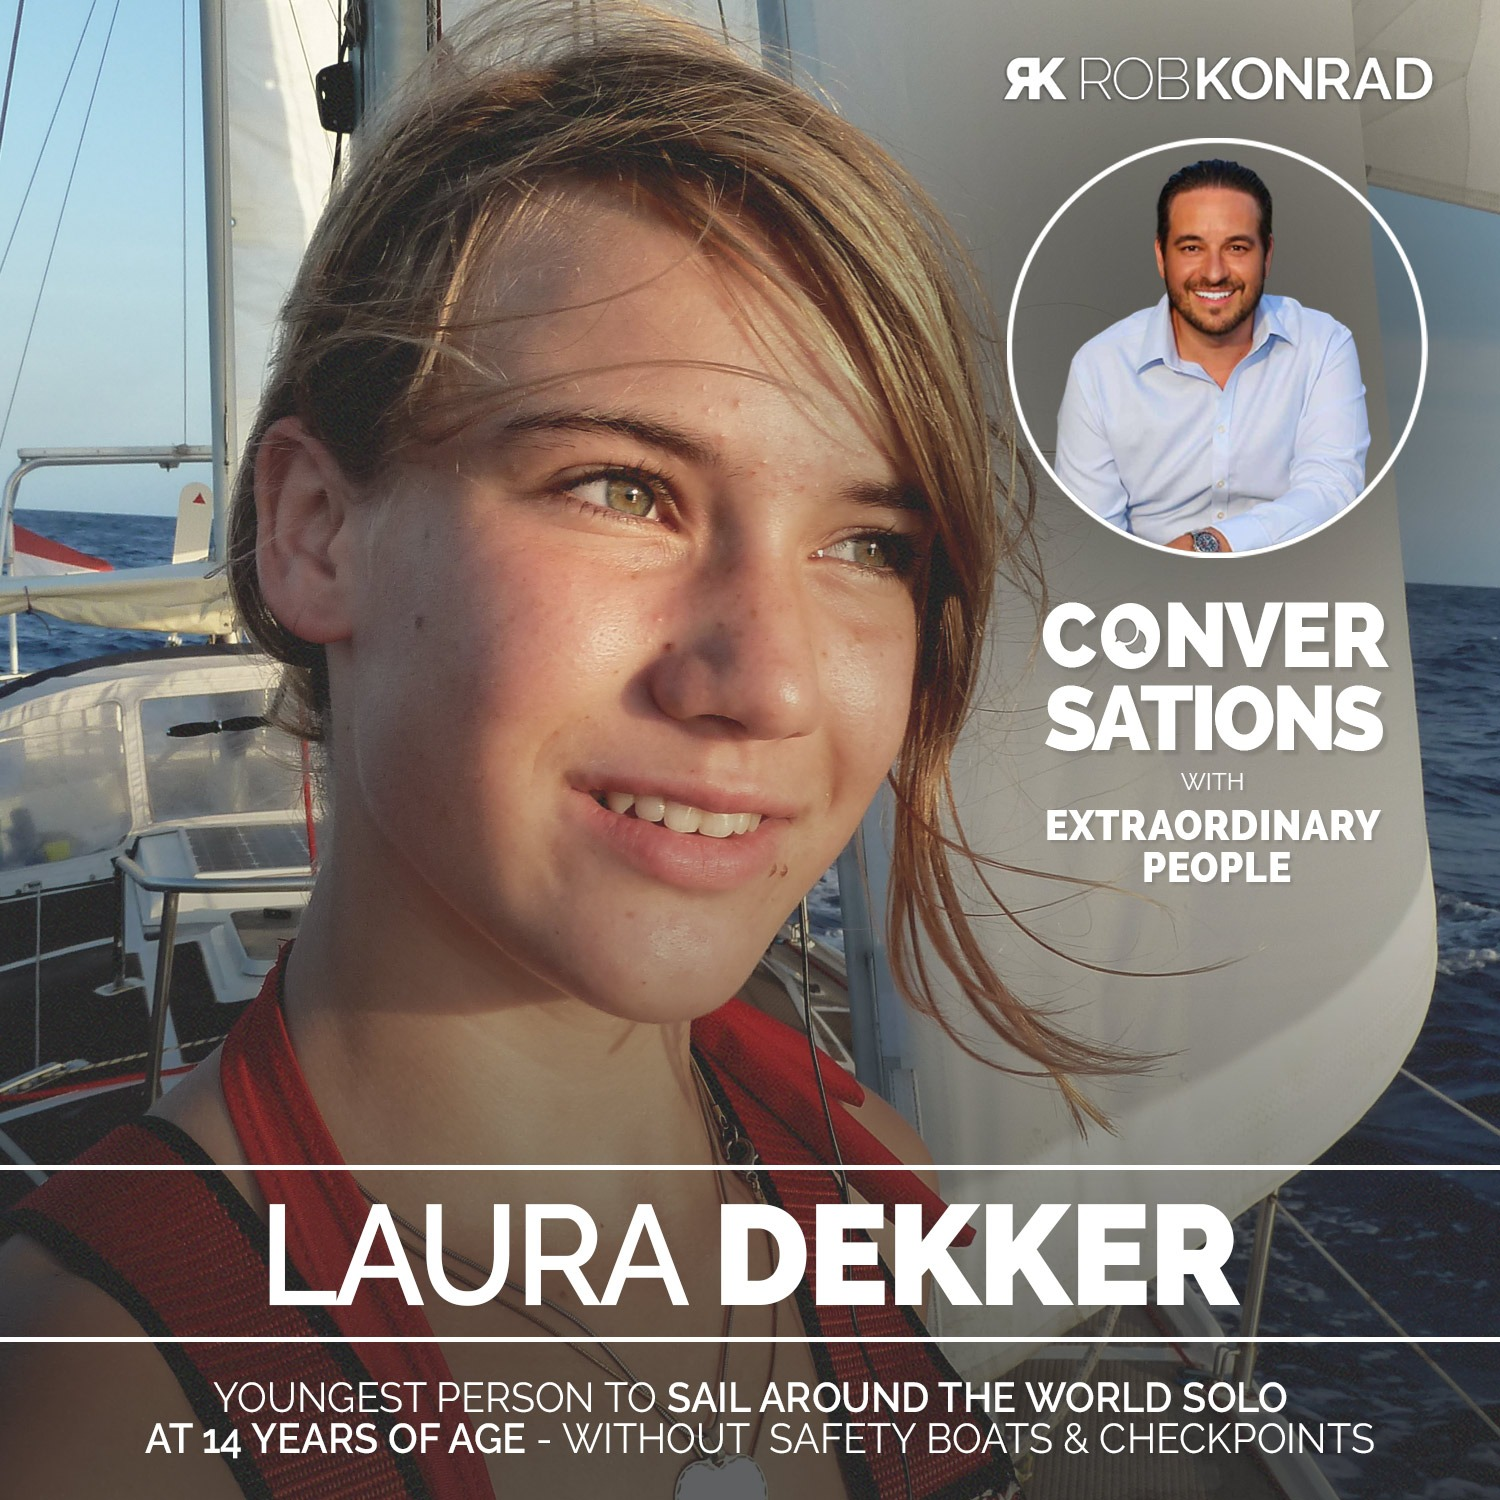 011. The Youngest Person To Solo Sail Around The World: Laura Dekker